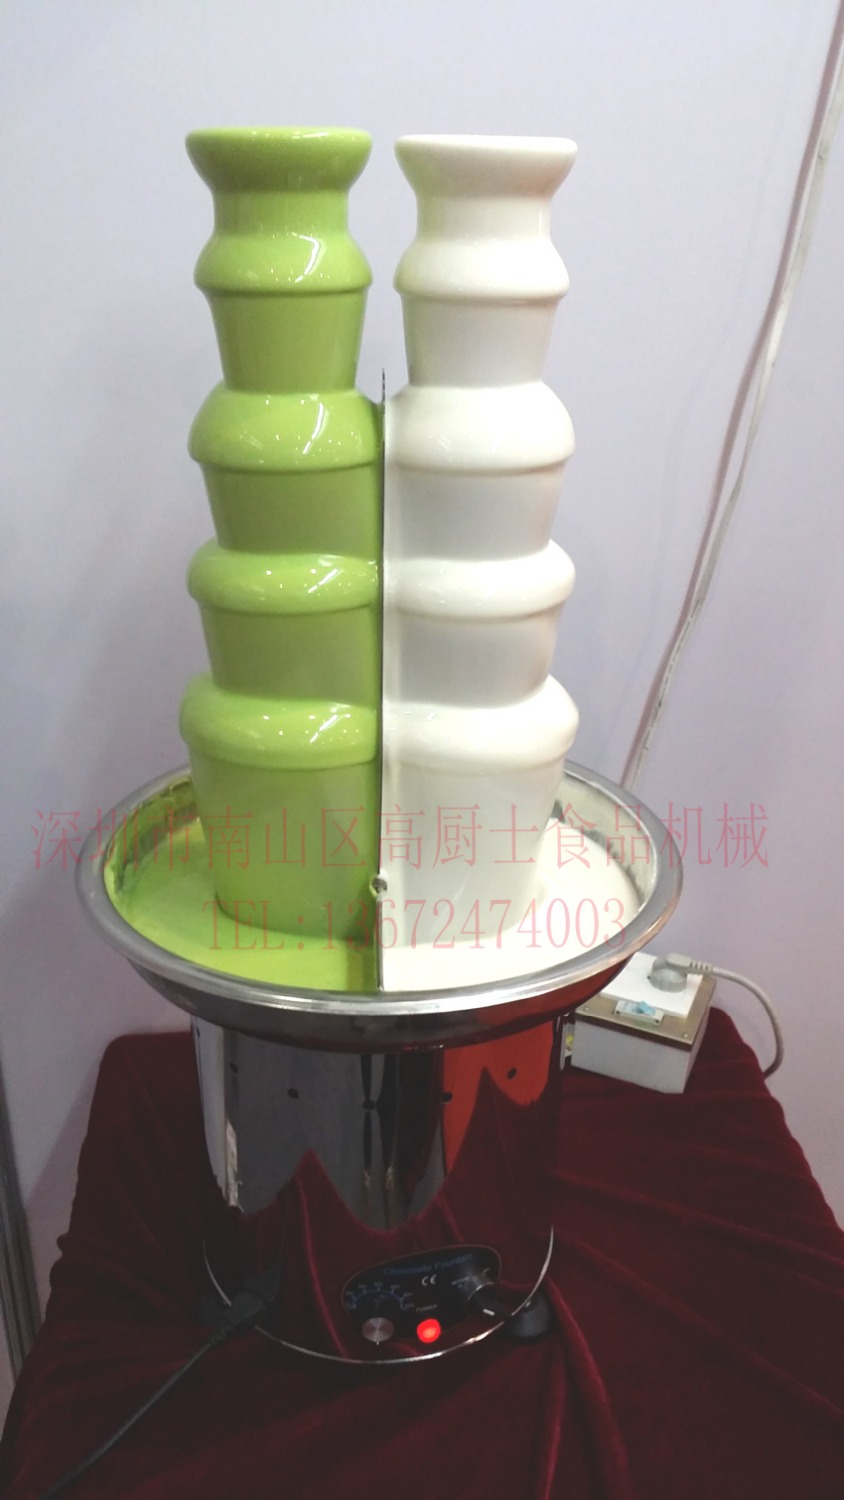 Free Shipping Double Color 5 Tier Chocolate Fountain Machine Good Quality 1 Year Warranty